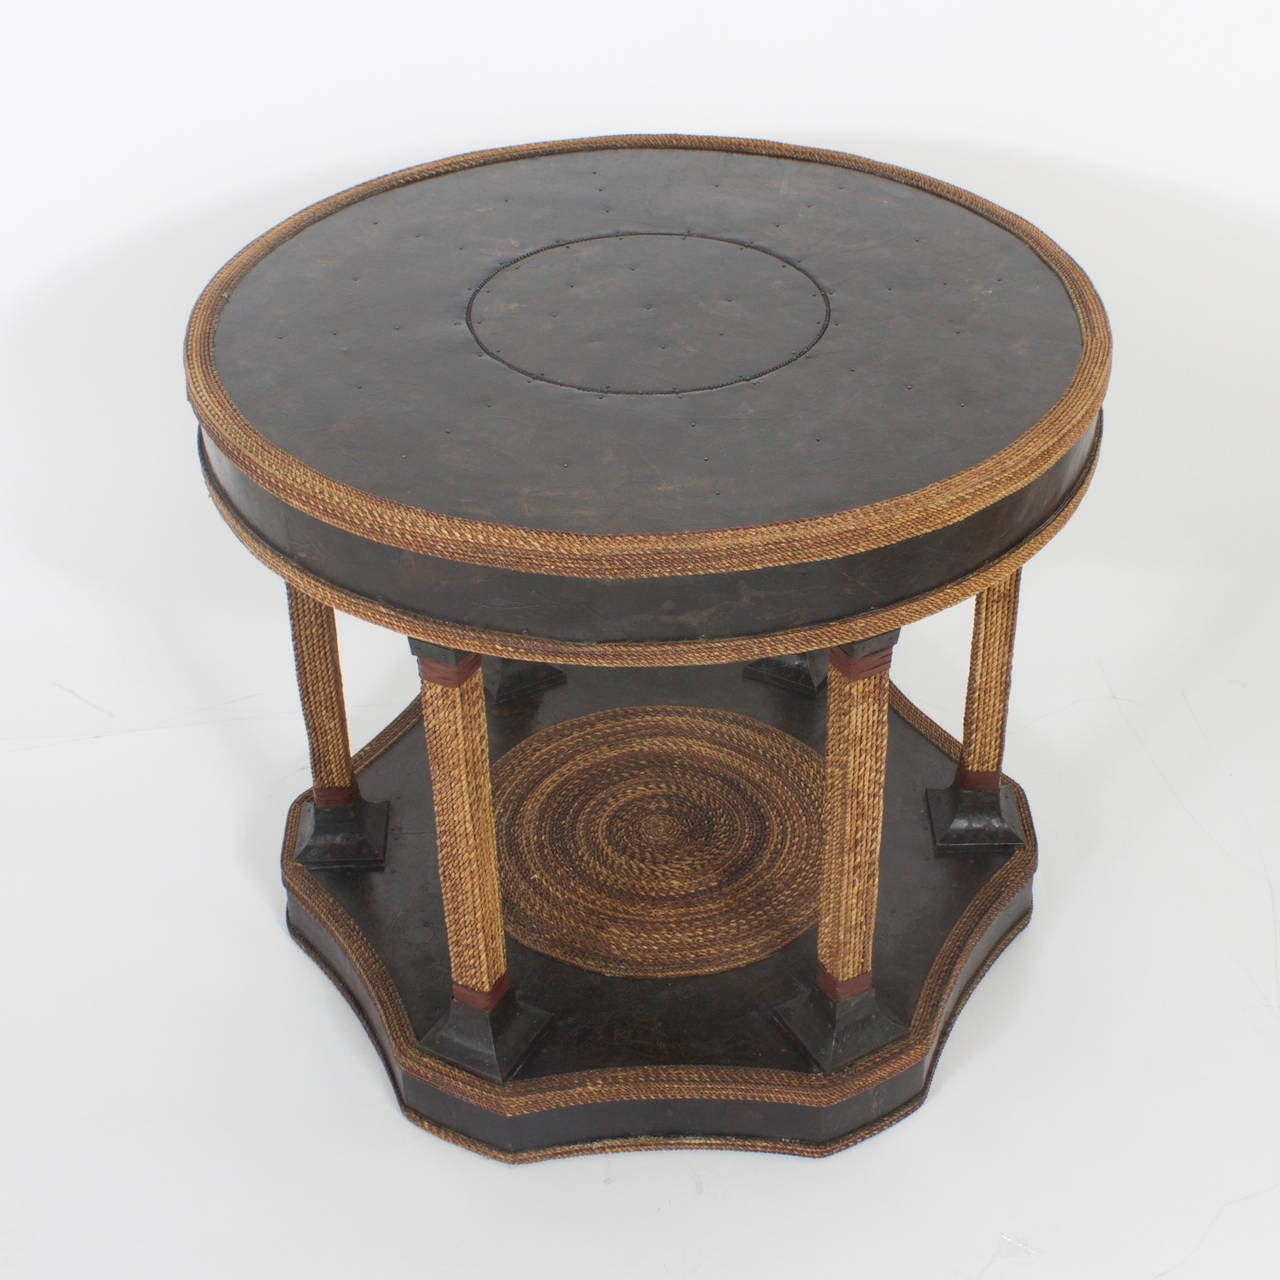 Maitland Smith Round Rope Table At 1stdibs